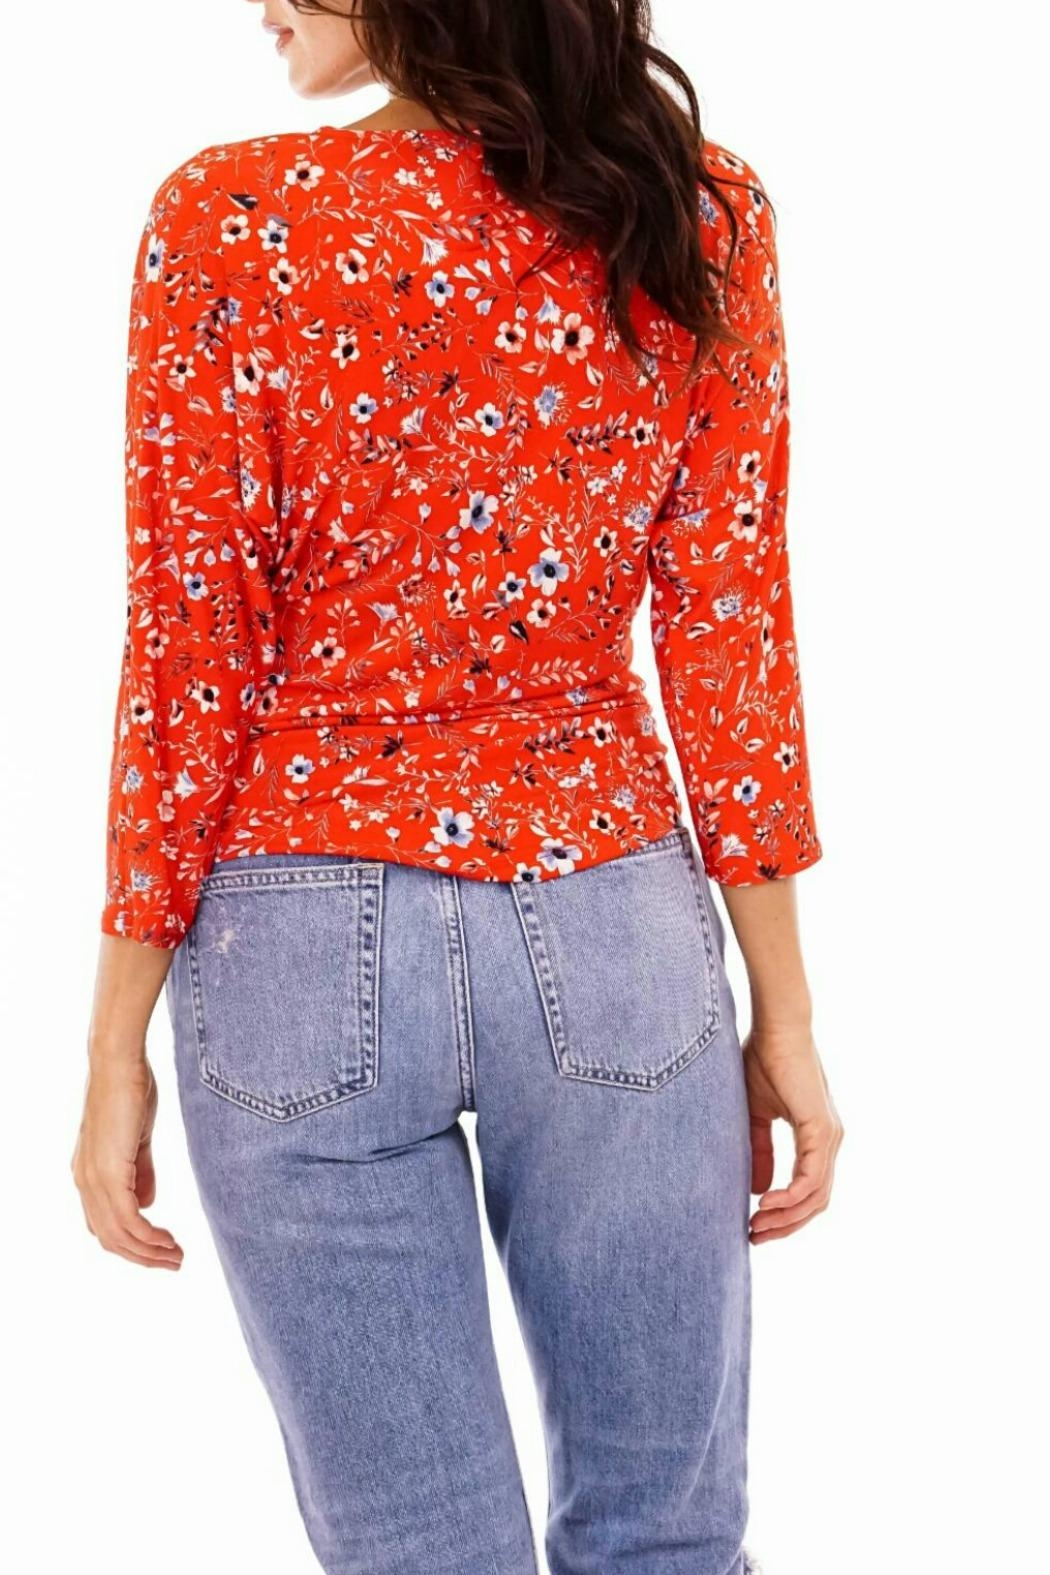 Veronica M Floral Wrap Top - Front Full Image